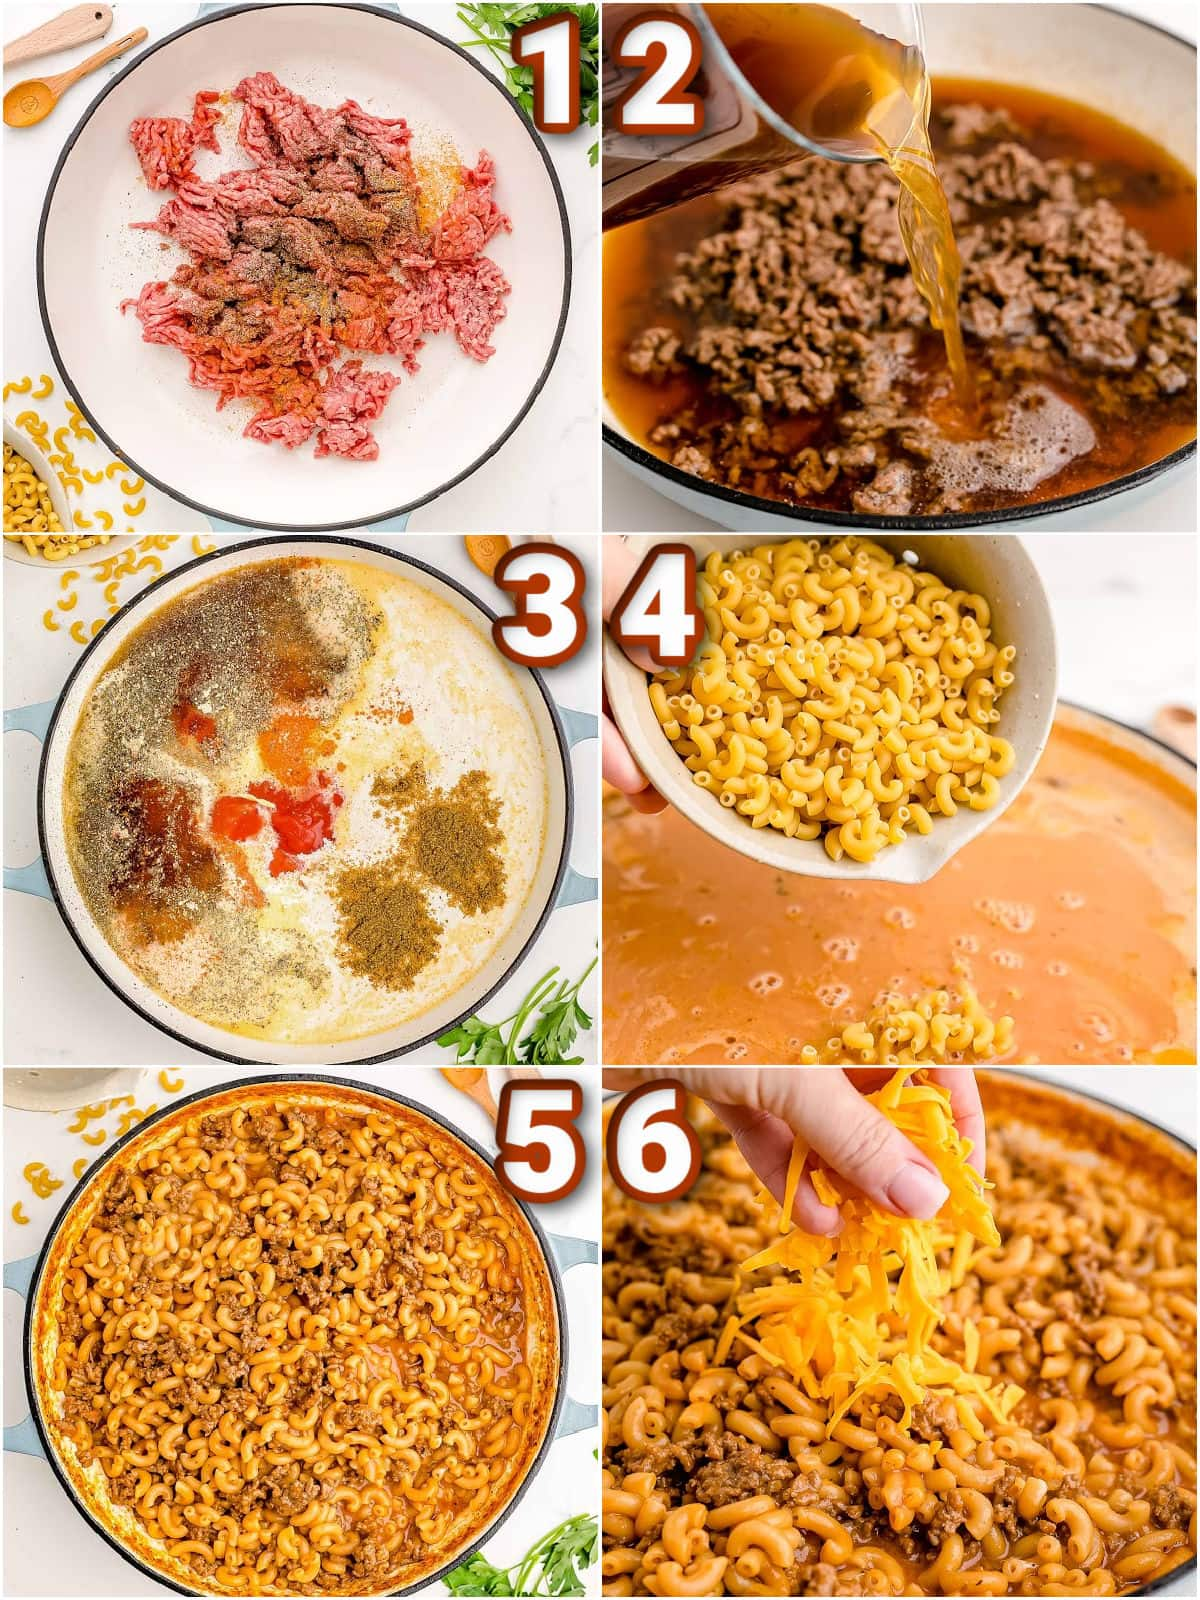 6 image collage showing step by step how to make hamburger helper at home.